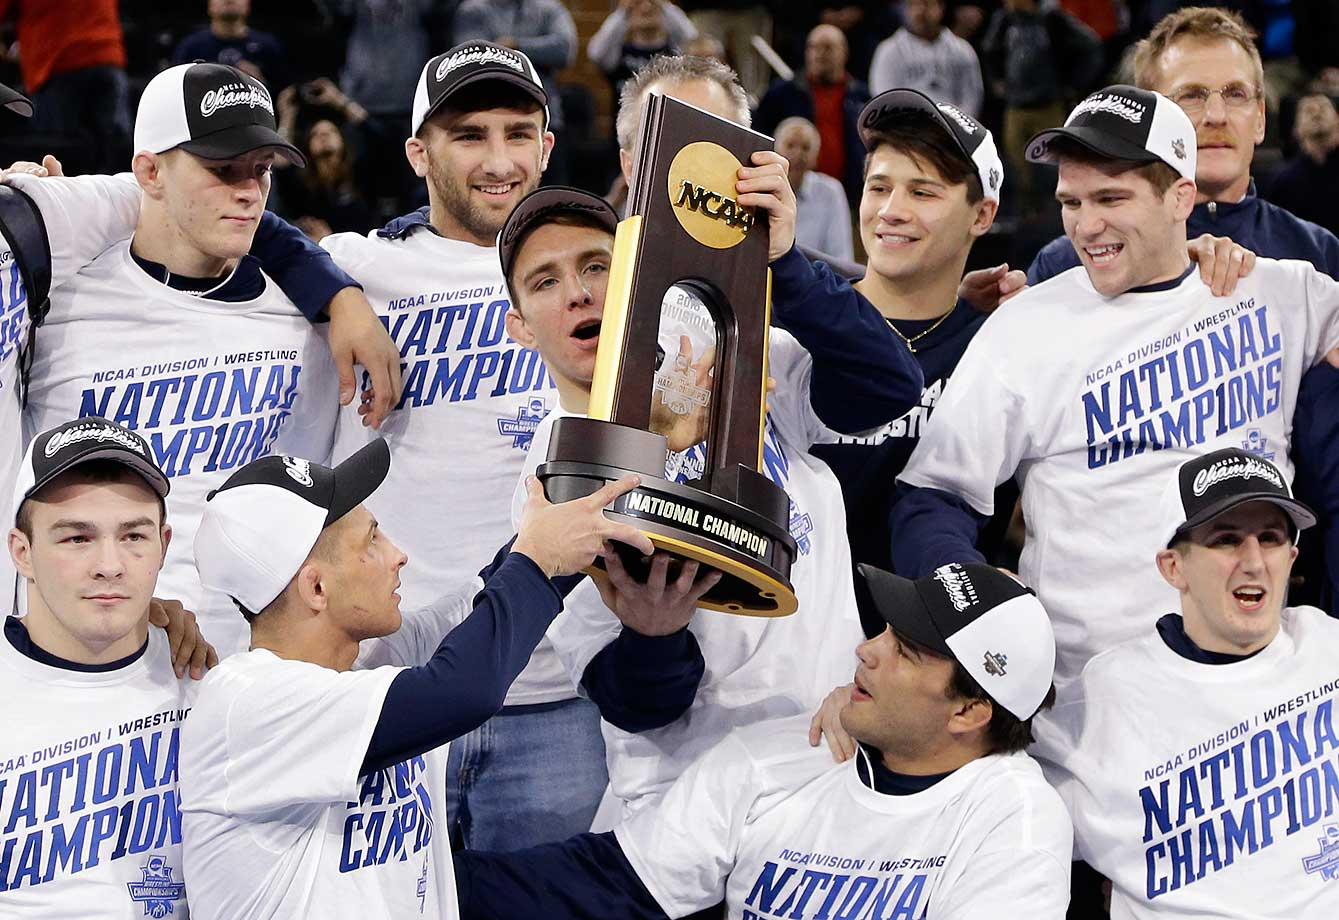 Penn State's Zain Retherford is handed the team's trophy as it poses for a photo after winning the NCAA Division I wrestling championships in New York.